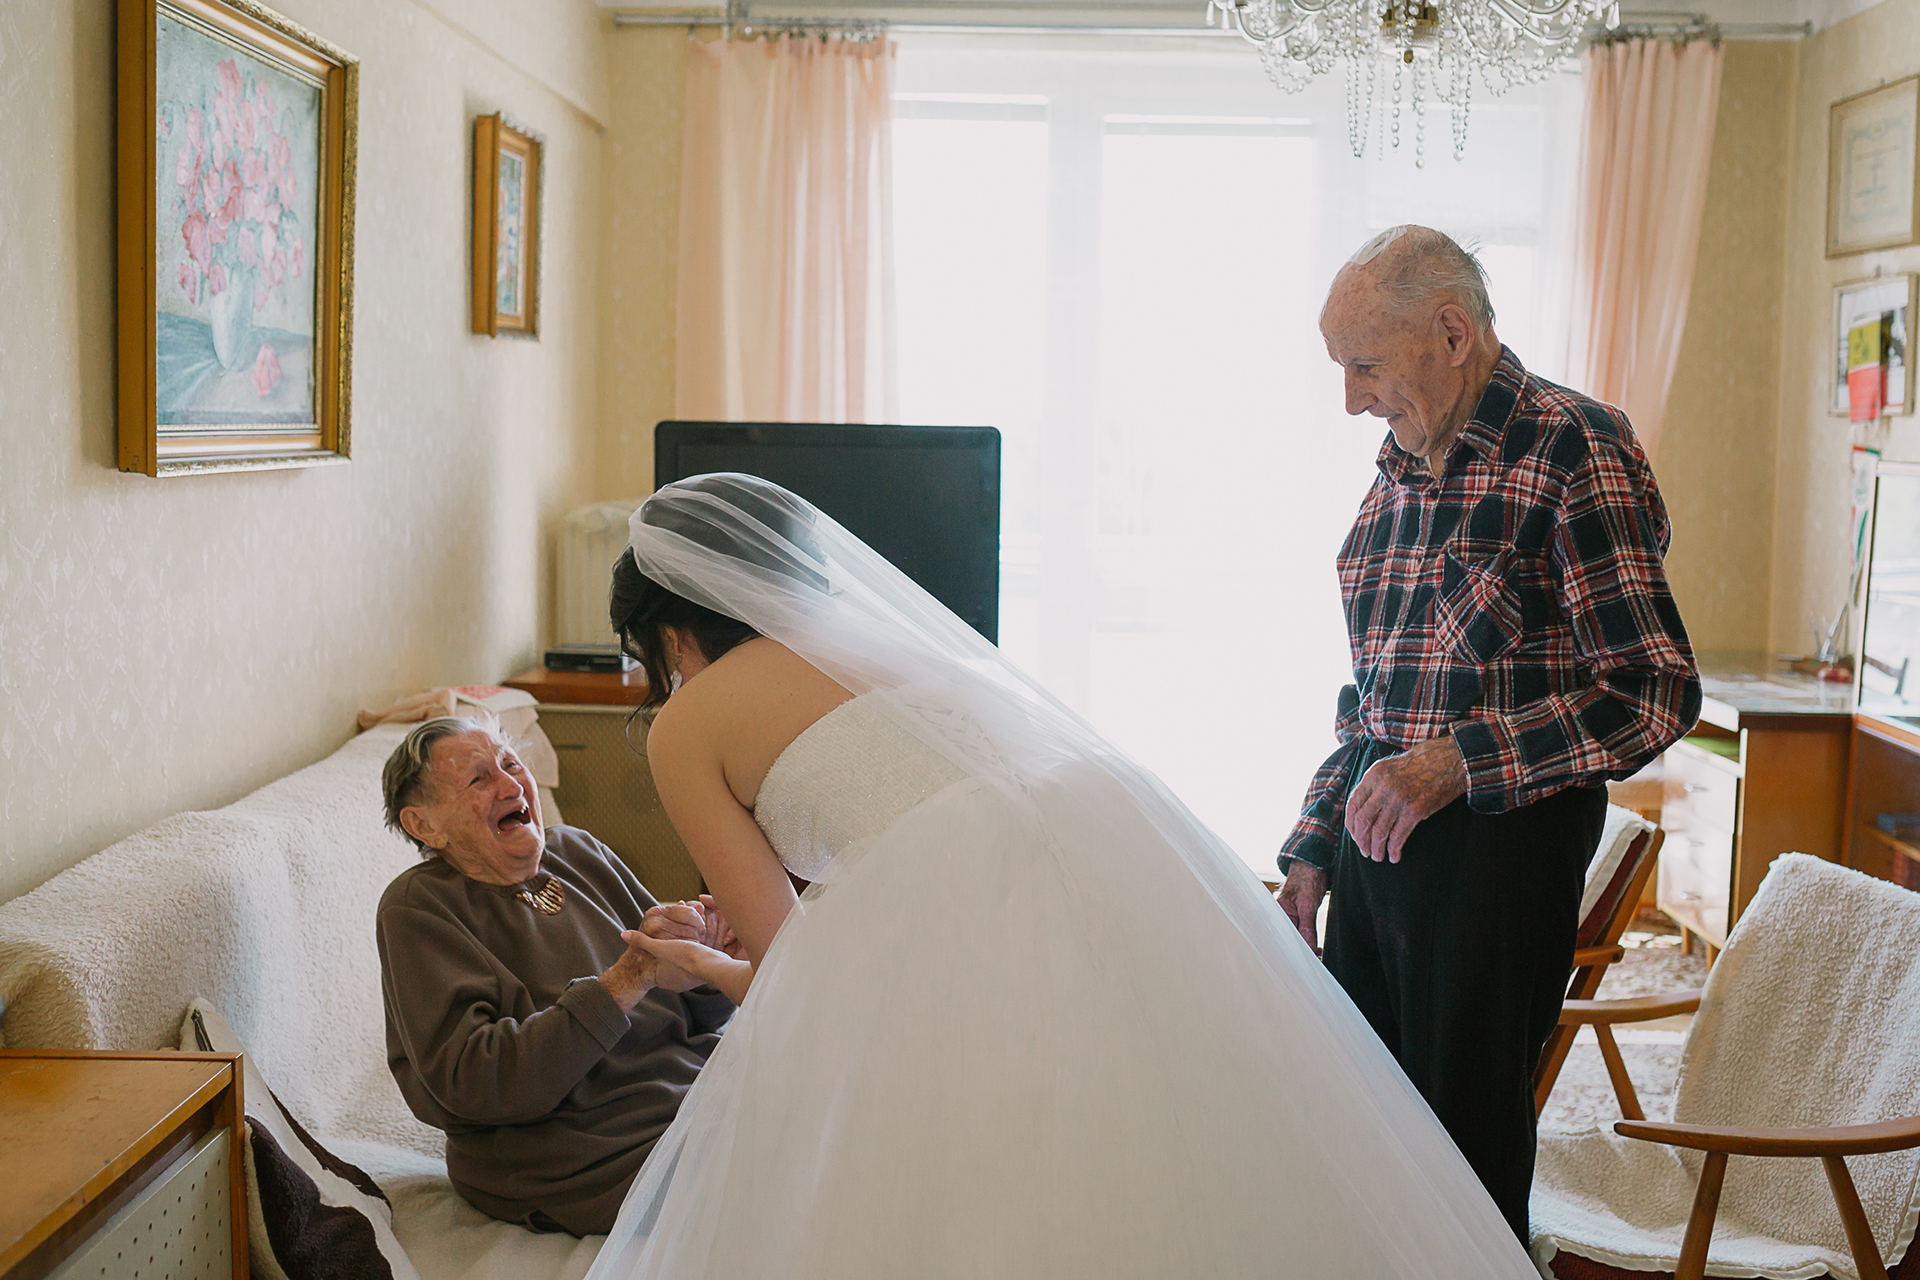 The Bride has a moment with her grandparents in this wedding day photograph.